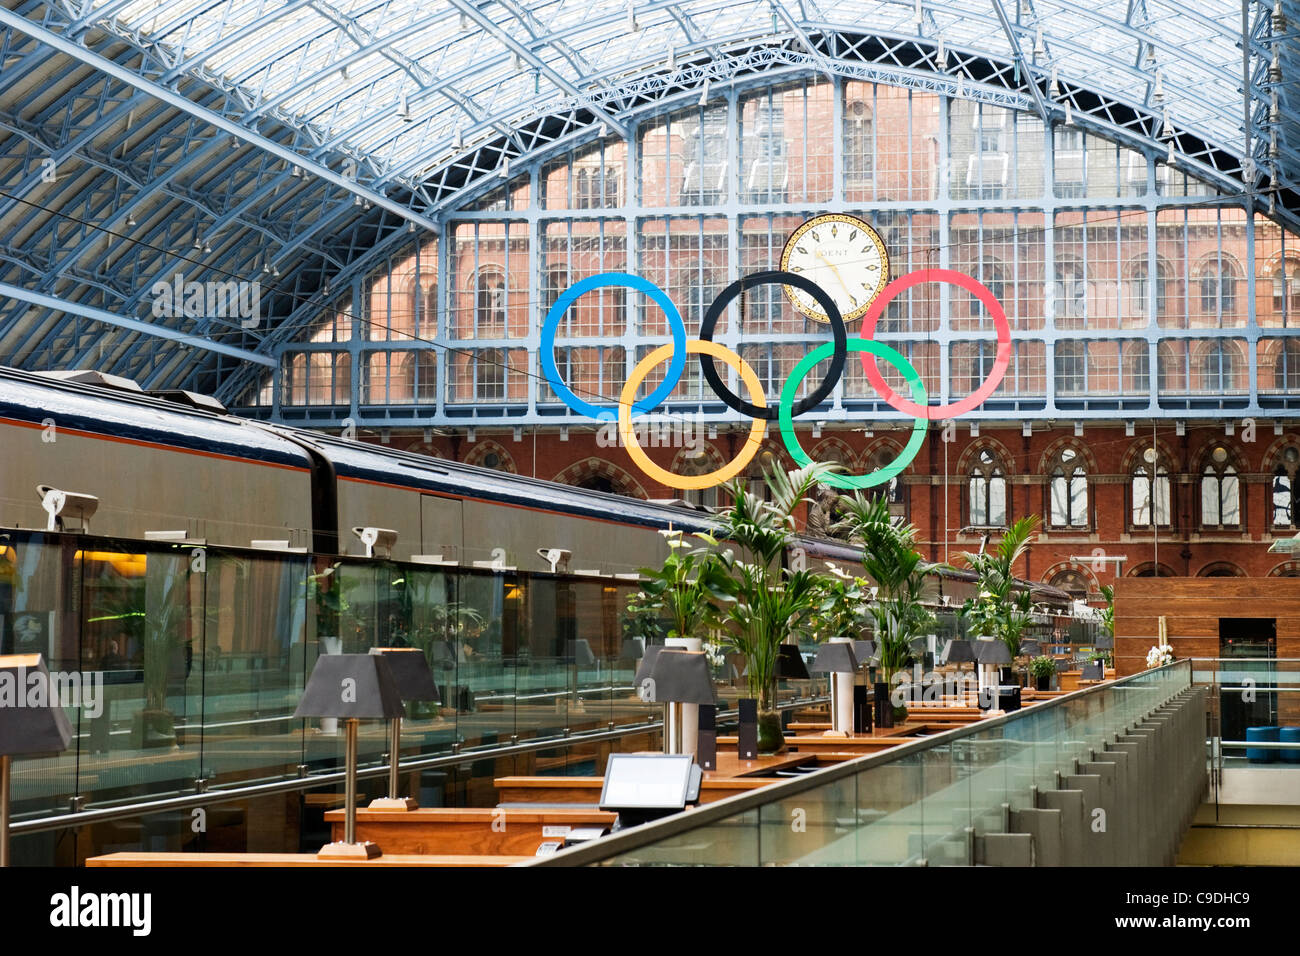 London St Pancras Station the Olympic rings from Champagne Bar Eurostar train in foreground glass roof roofs small - Stock Image